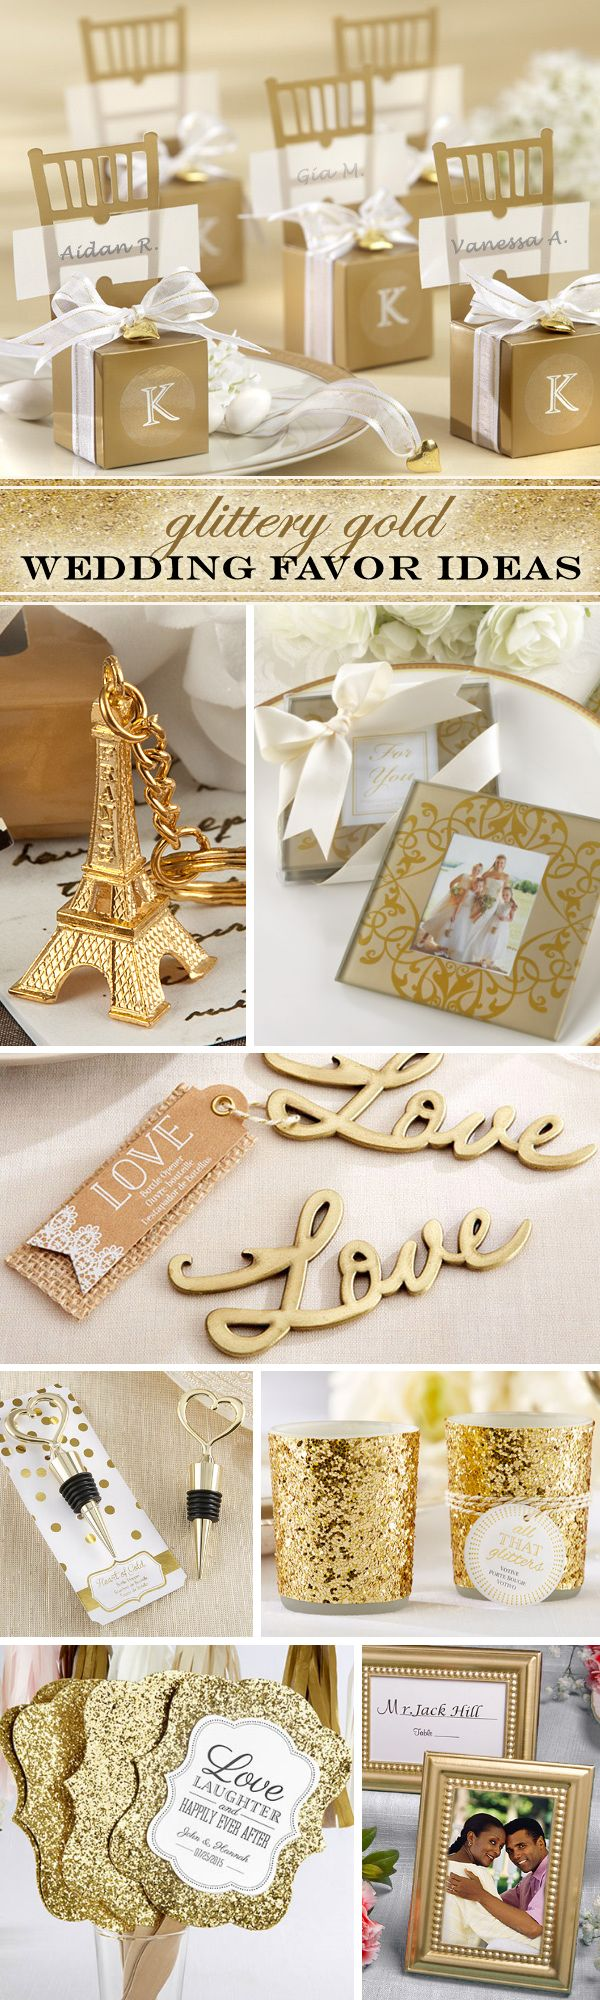 Wedding Gifts Sydney: Best 20+ Gold Wedding Favors Ideas On Pinterest